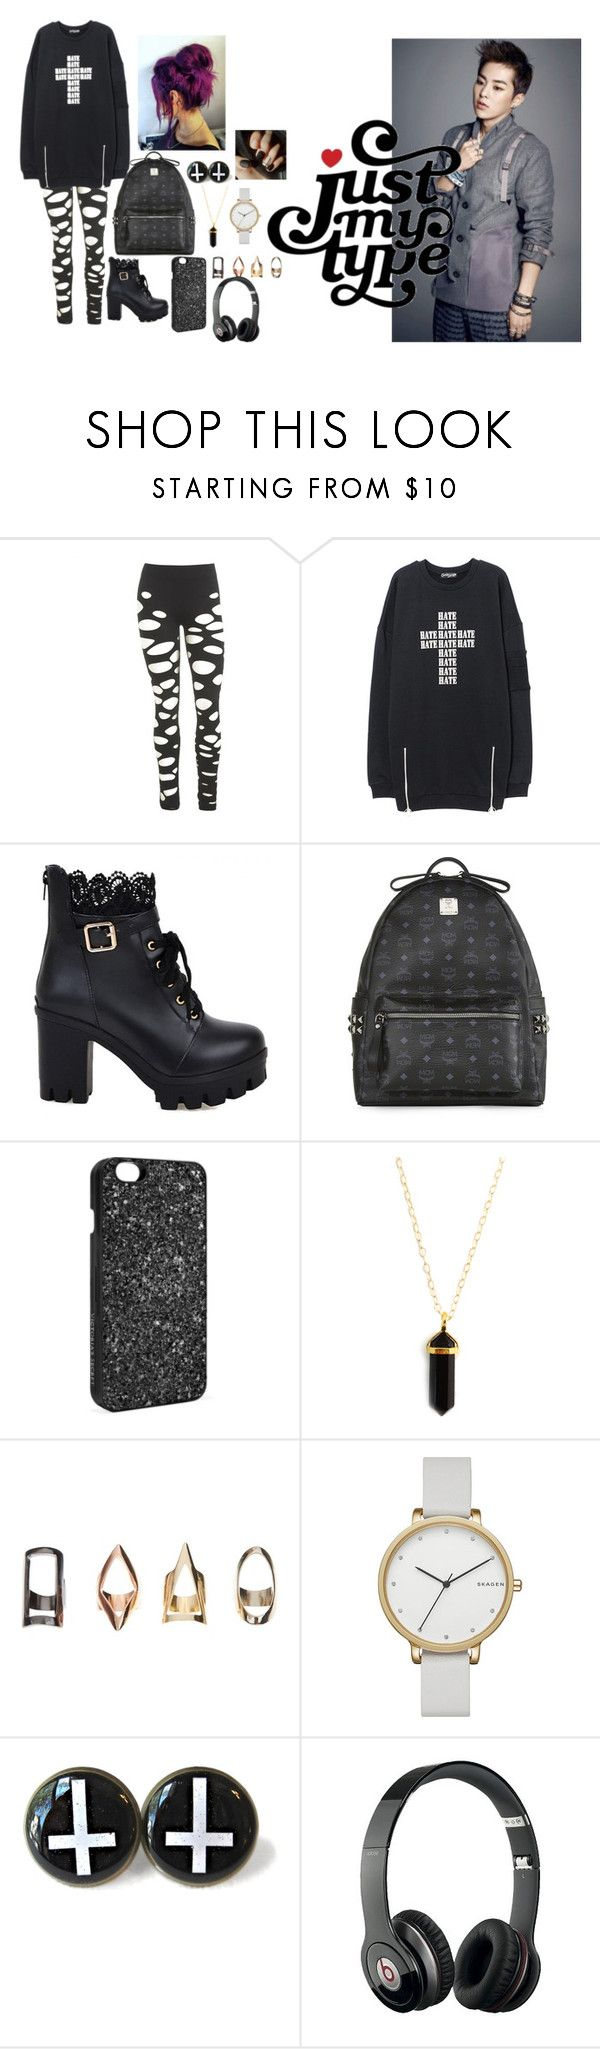 """""""Mall With Xiumin"""" by kpopisbae4life ❤ liked on Polyvore featuring Wet Seal, MCM, Victoria's Secret, Skagen and Beats by Dr. Dre"""